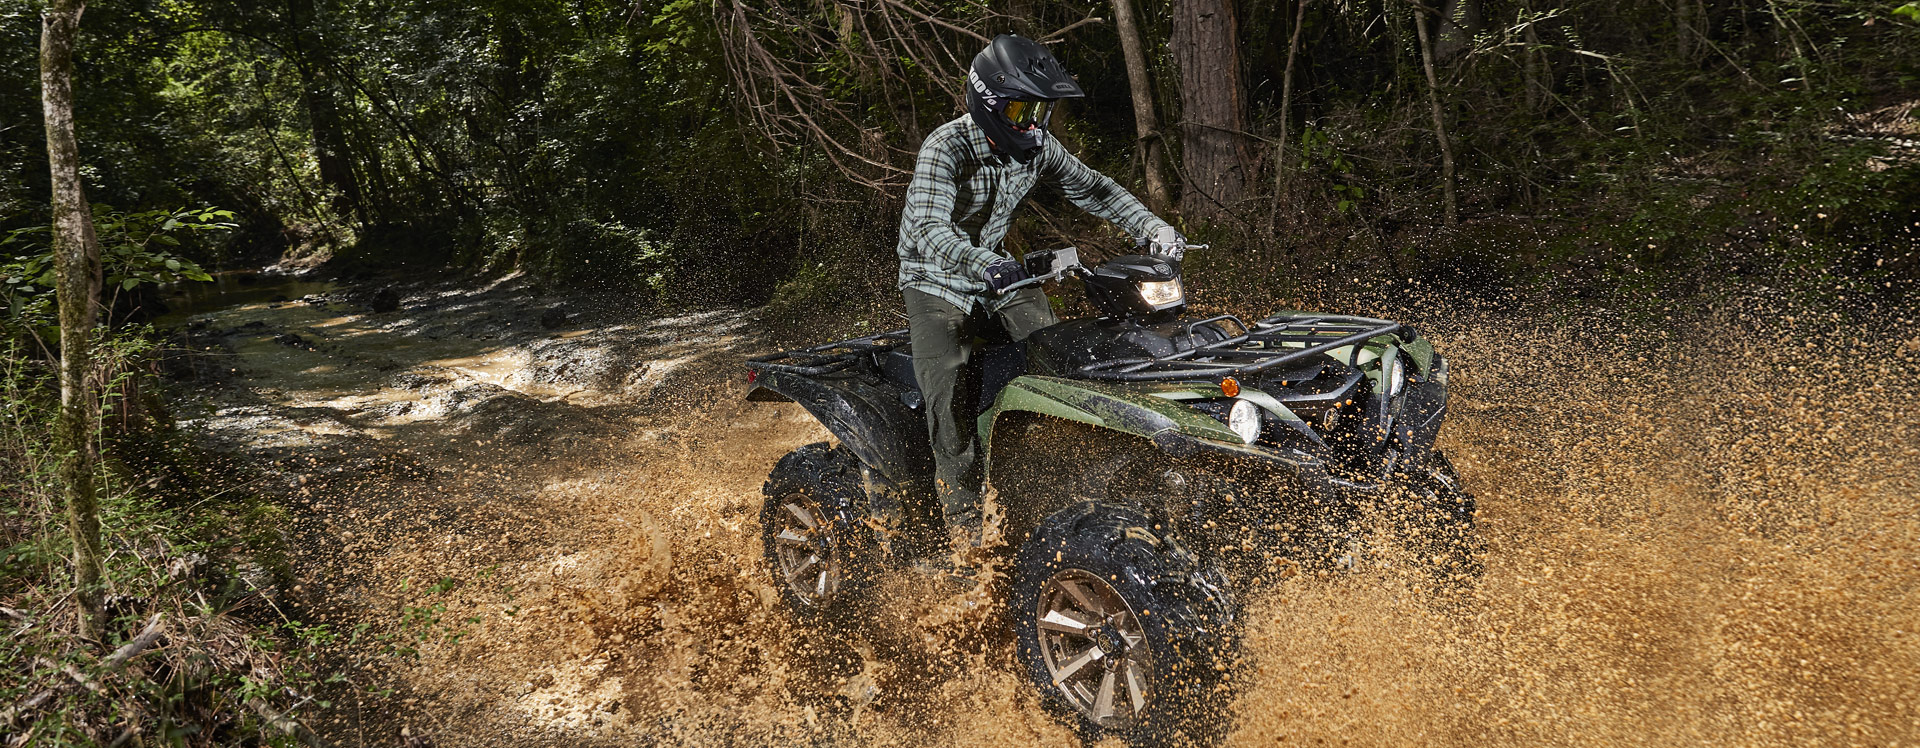 2021 Yamaha Grizzly-Eps-Xt-R